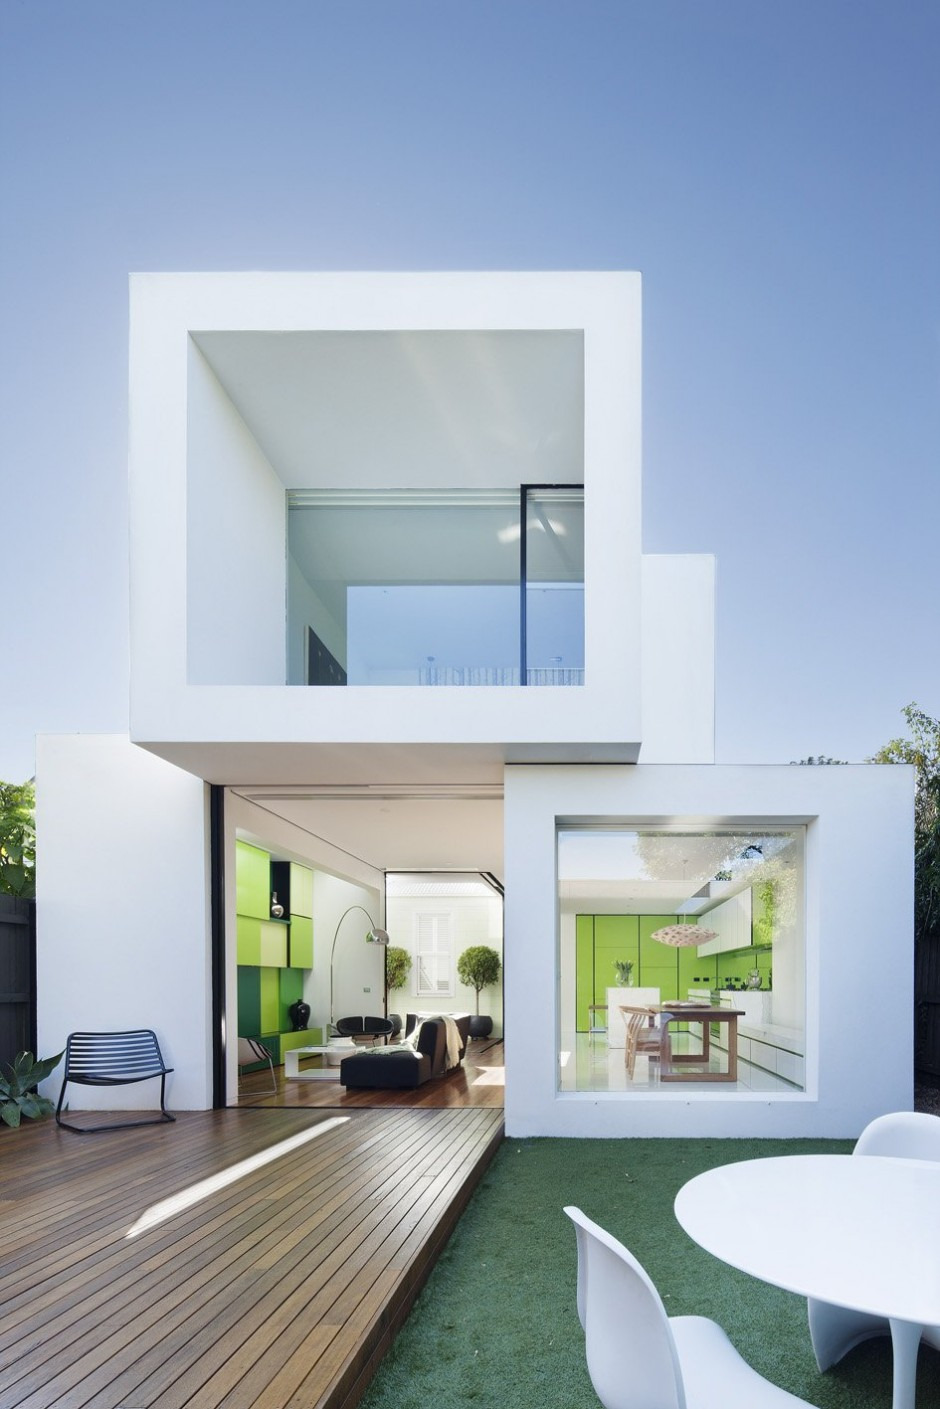 House Structure Design Ideas Fresh 40 Modern House Designs Floor Plans and Small House Ideas